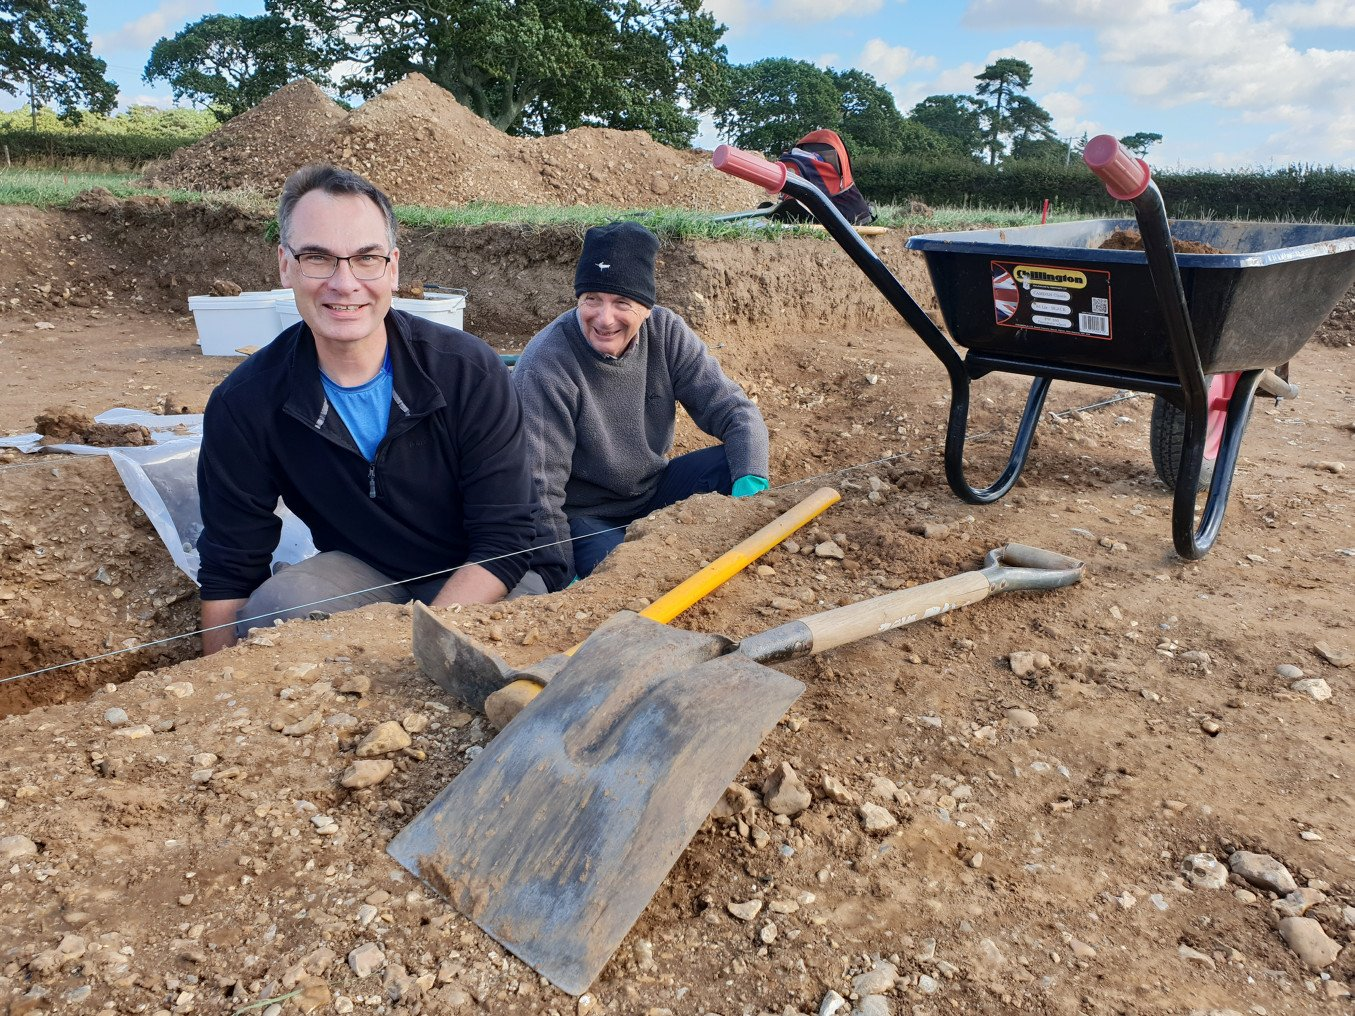 Volunteers Will Ward (left) and Owen Morgan helping with the excavation